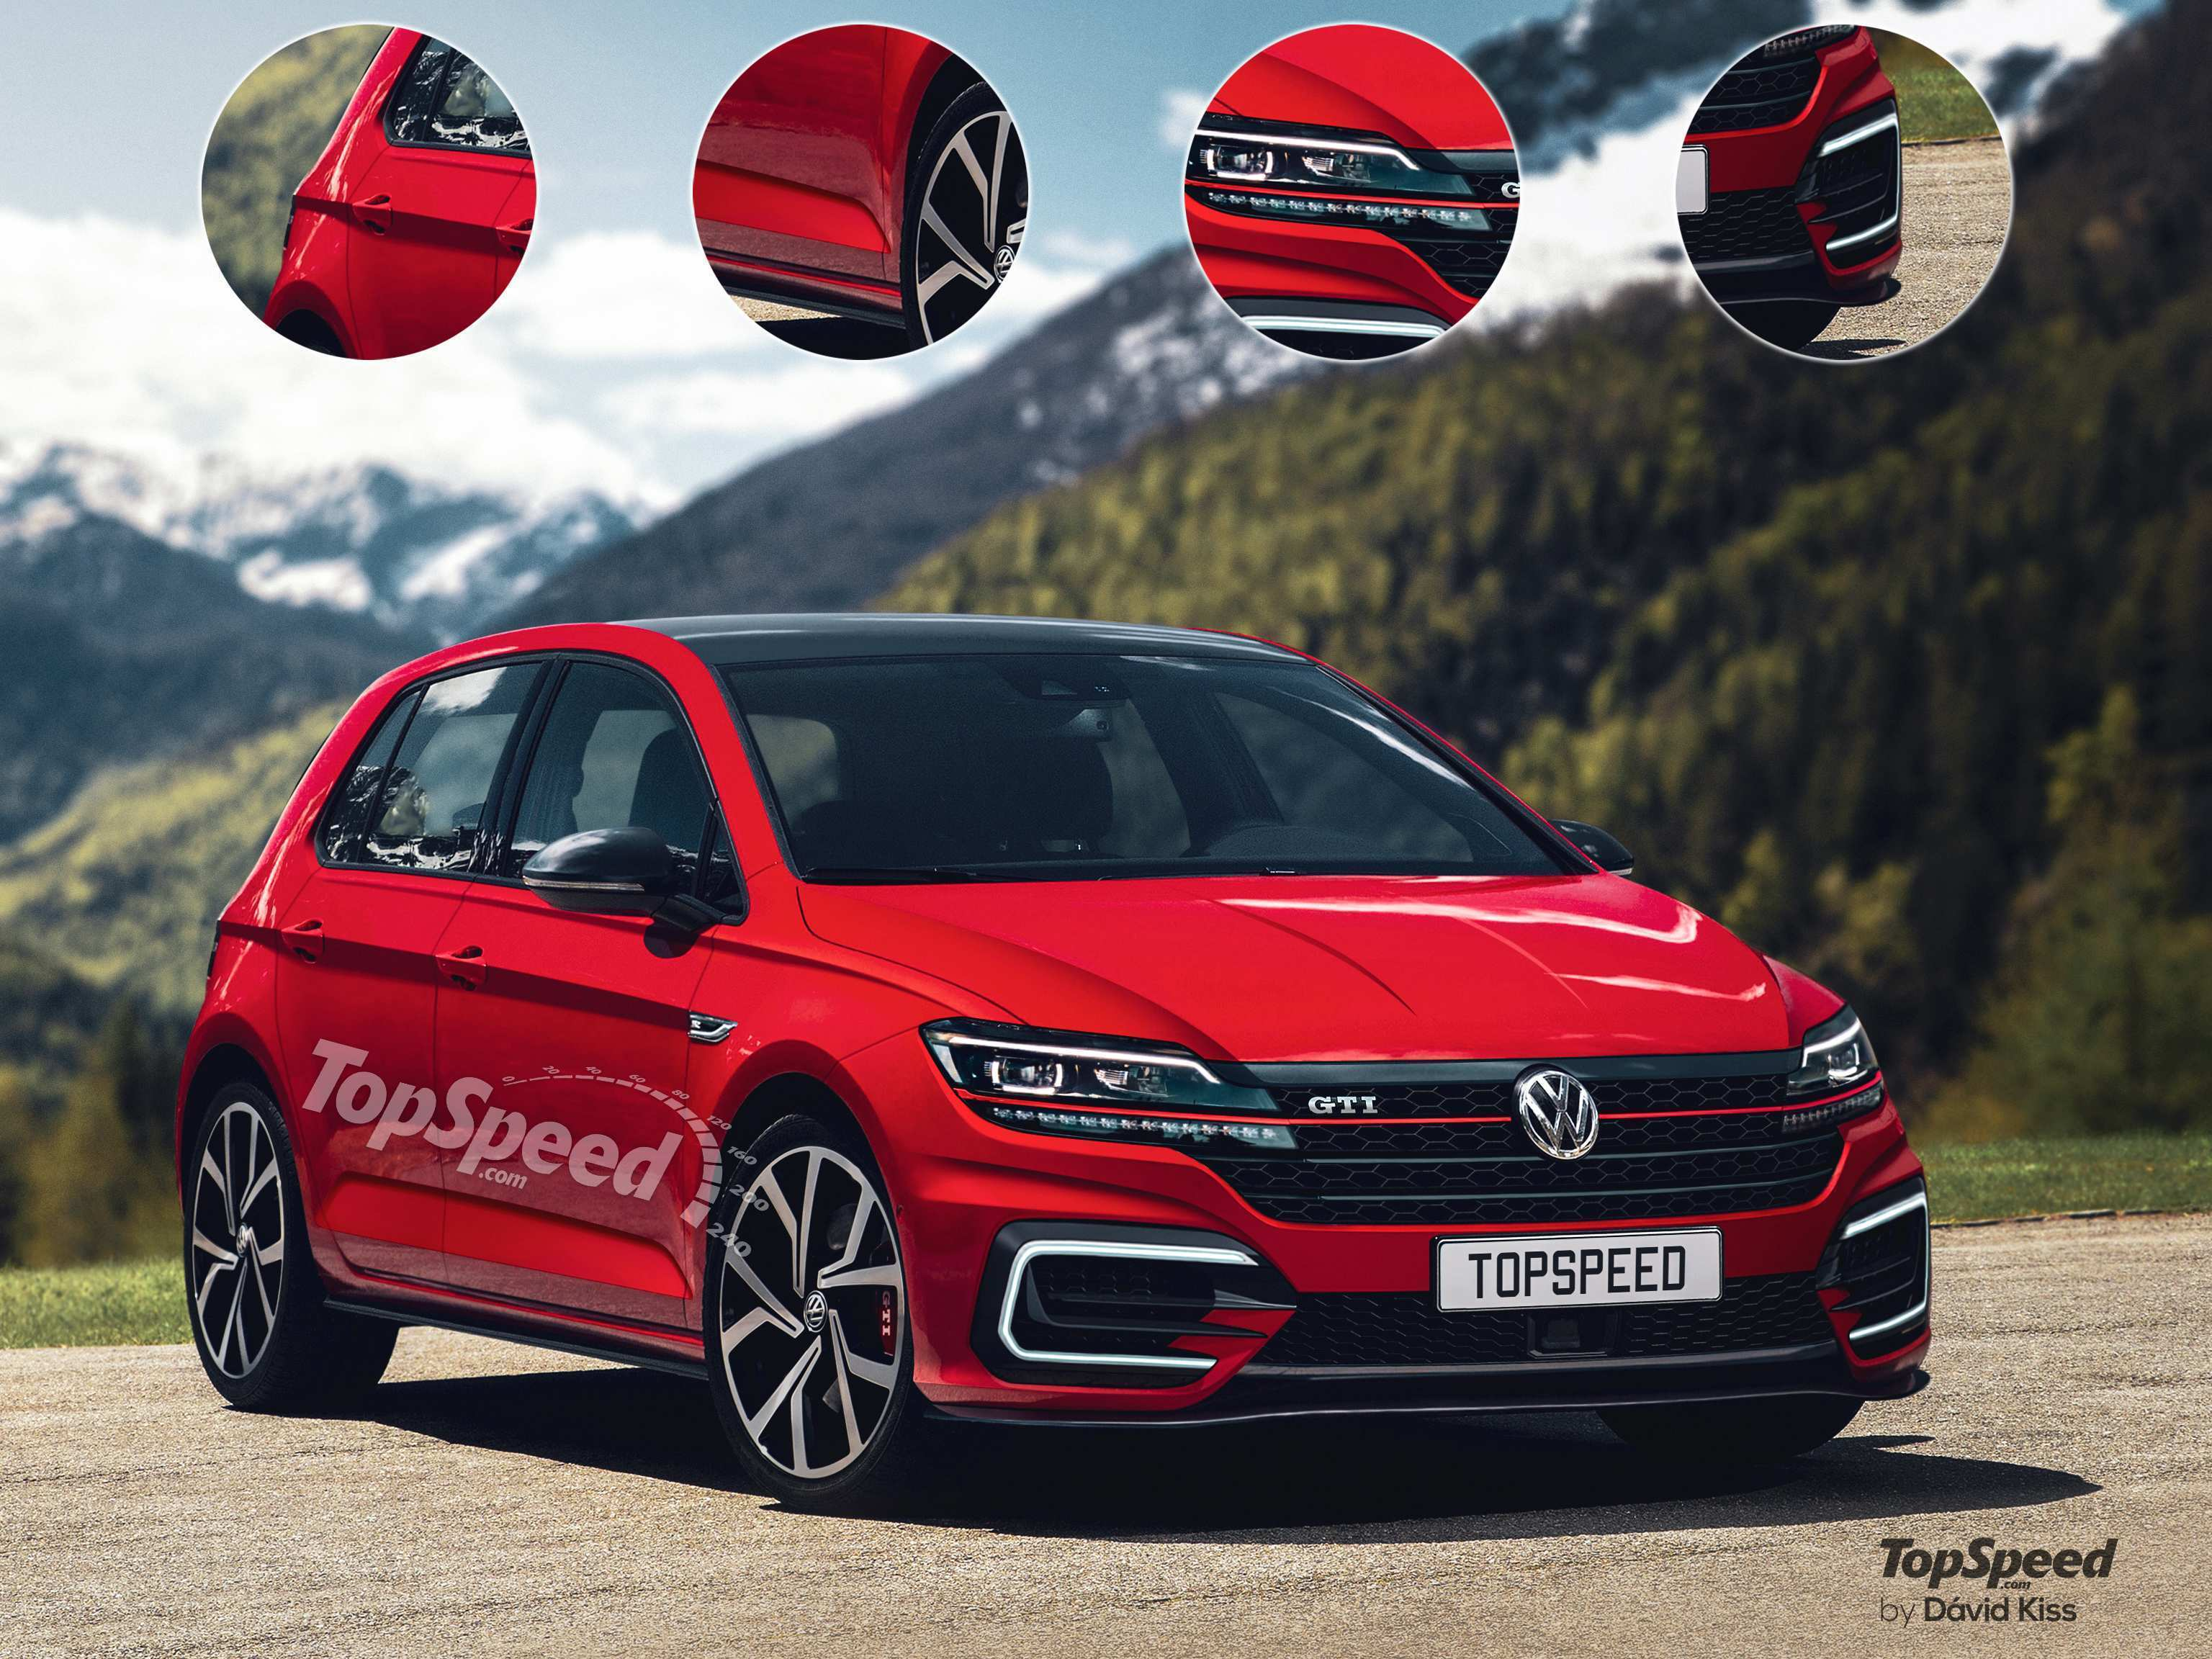 61 All New 2020 Volkswagen Gti Model by 2020 Volkswagen Gti